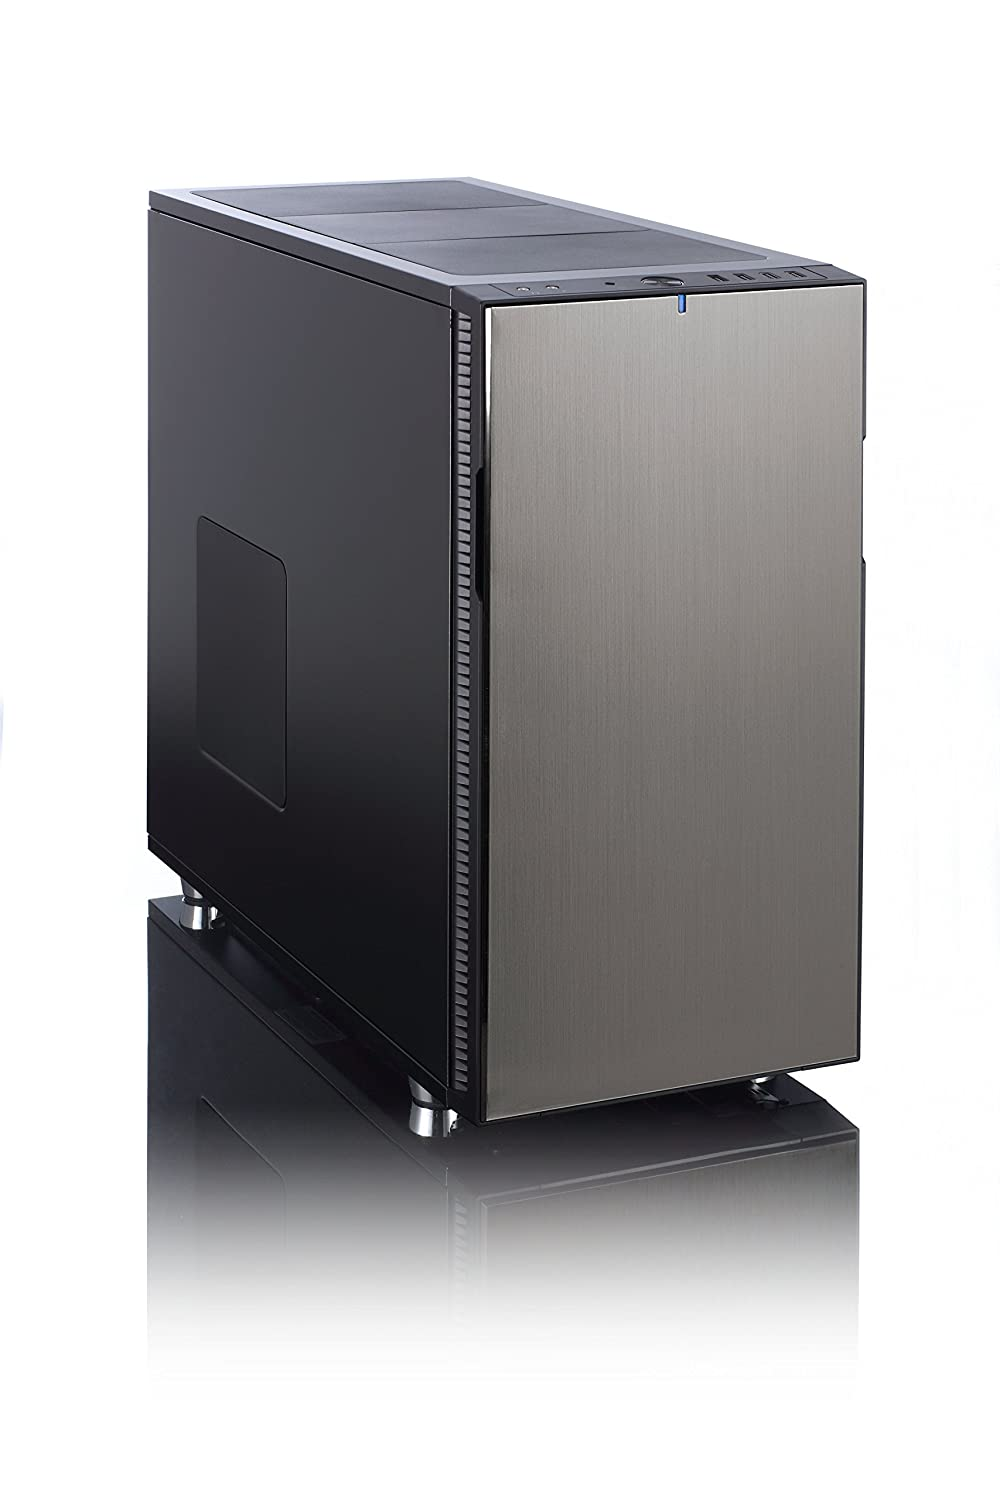 Fractual Design FD-CA-DEF-R5-TI - Caja de ordenador (Midi-Tower, PC, ATX, Micro-ATX, Mini-ITX, Bottom, 1 x 140 mm, 120/140 mm): Amazon.es: Informática